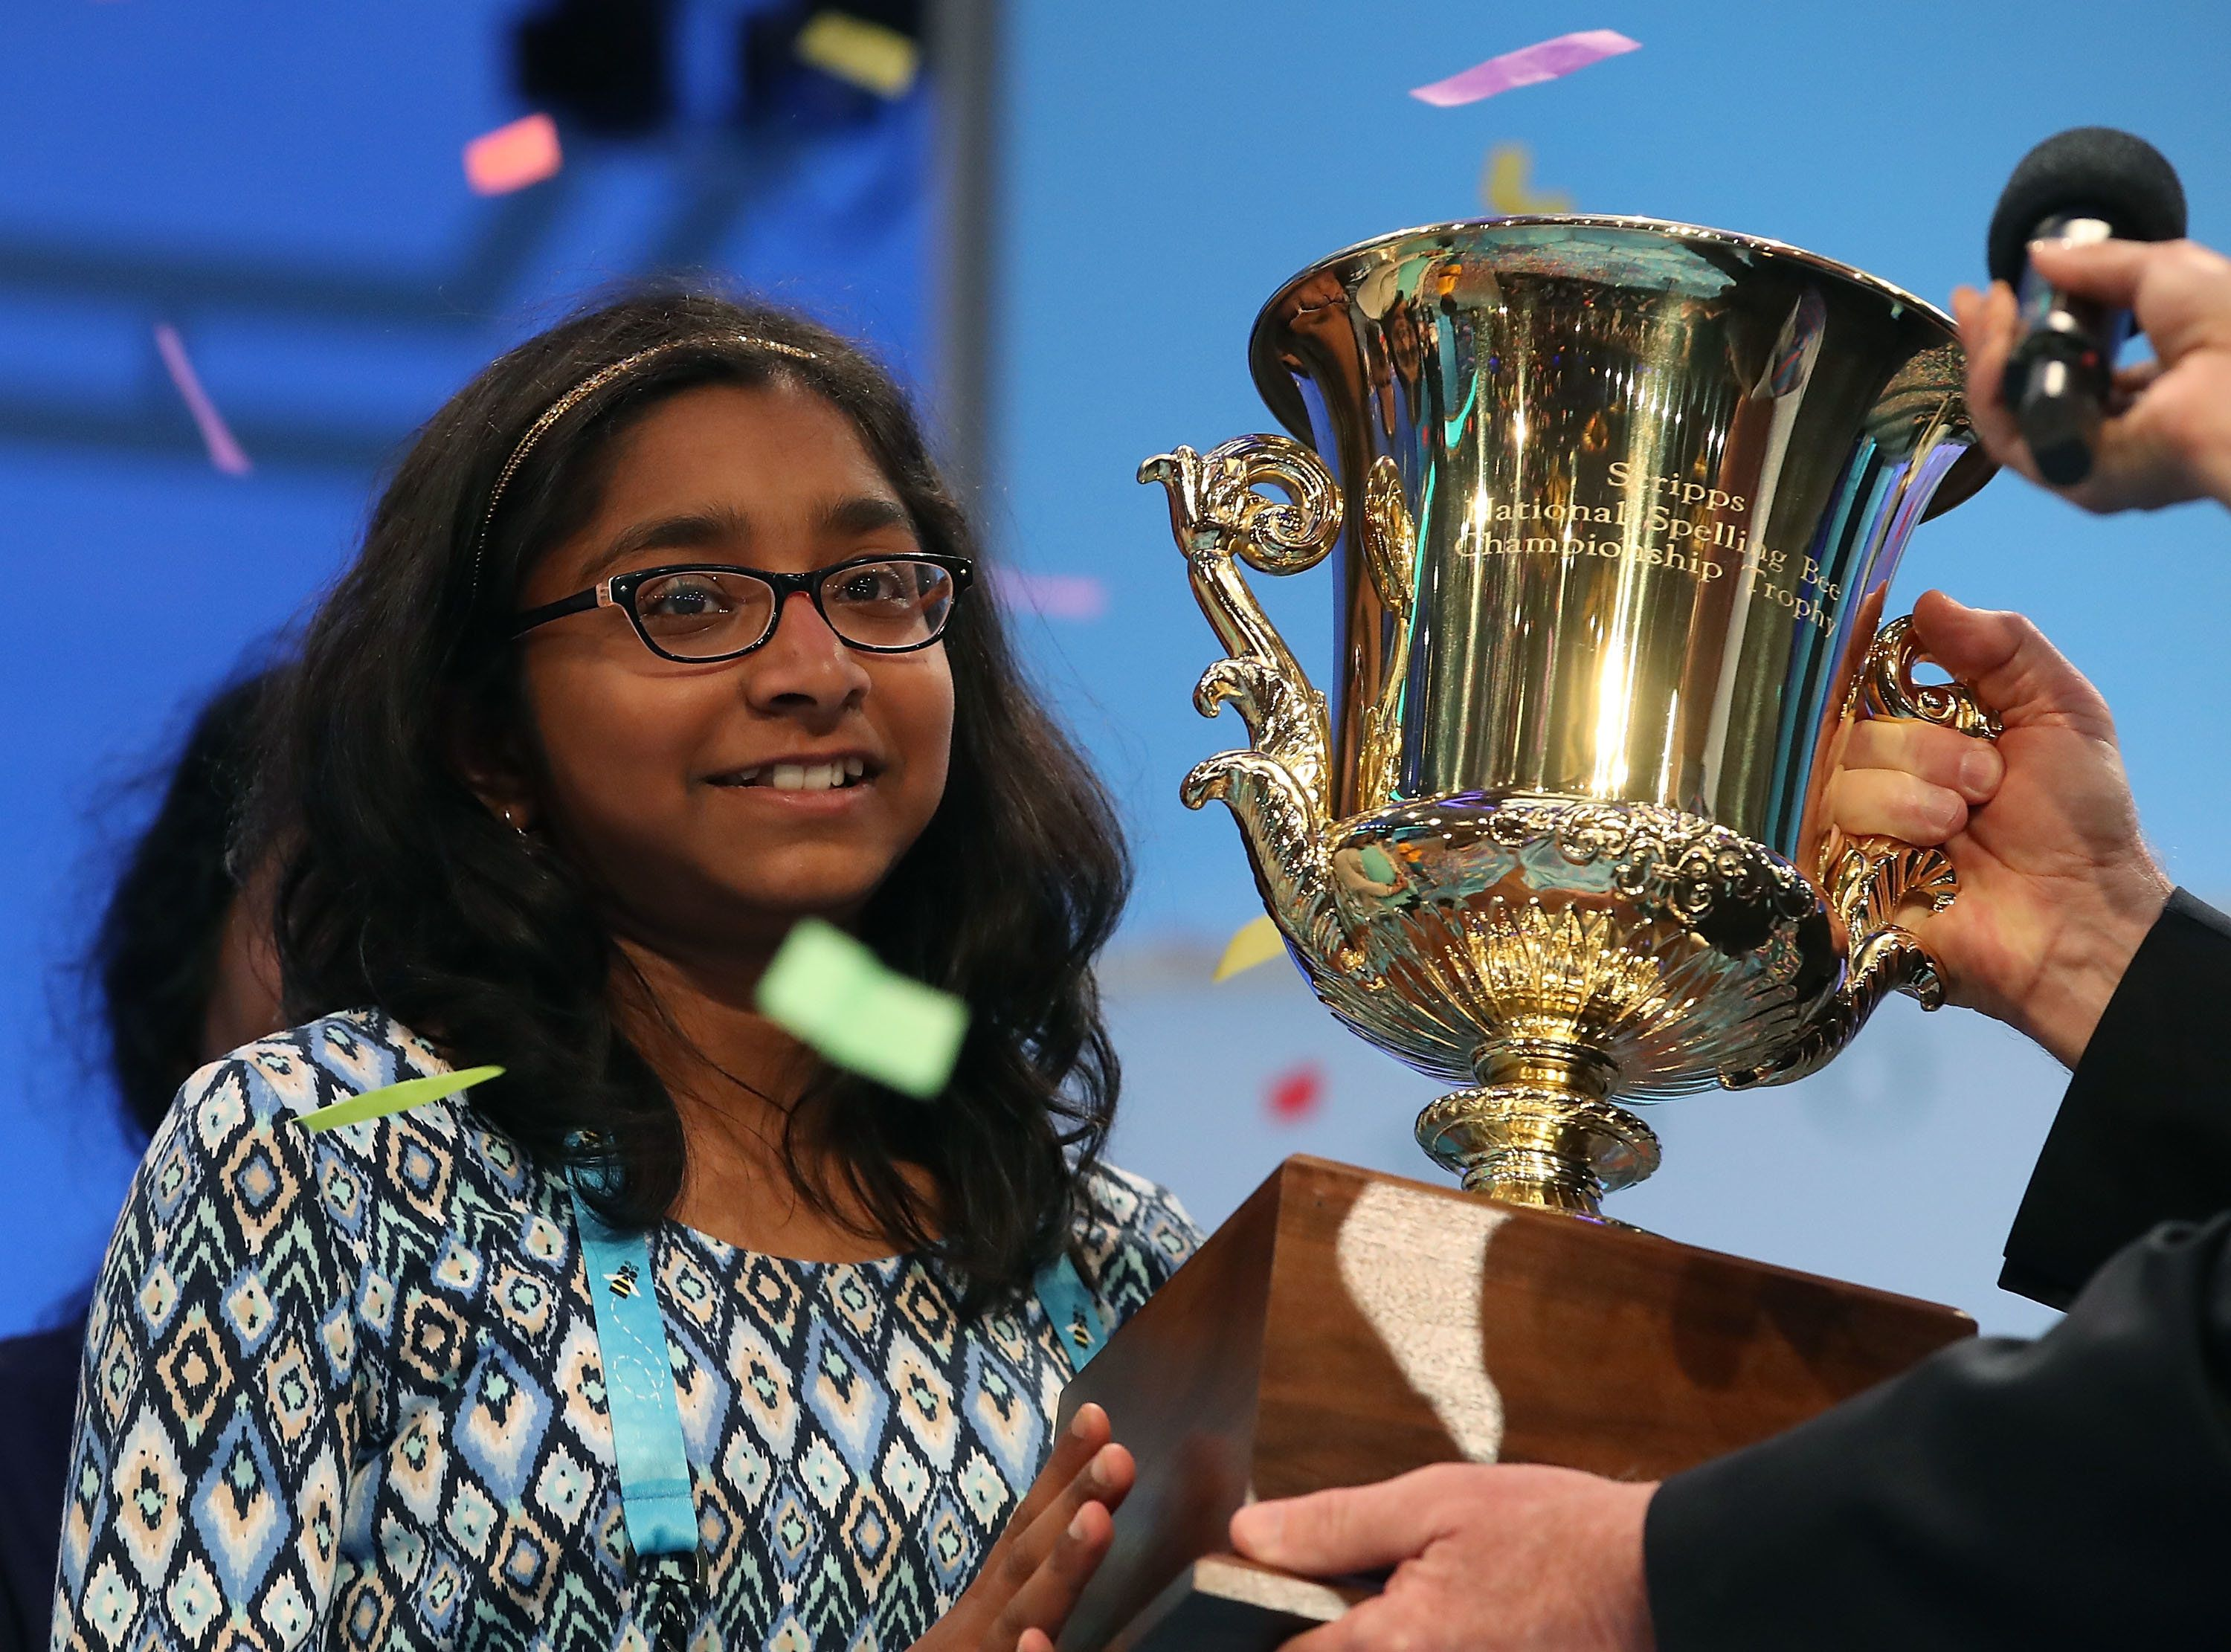 NATIONAL HARBOR, MD - JUNE 01: Ananya Vinay of Fresno, CA. won the 2017 Scripps National Spelling Bee by spelling the word 'marocain', at Gaylord National Resort & Convention Center June 1, 2017 in National Harbor, Maryland. Close to 300 spellers are competing in the annual spelling contest for the top honor this year.  (Photo by Mark Wilson/Getty Images)